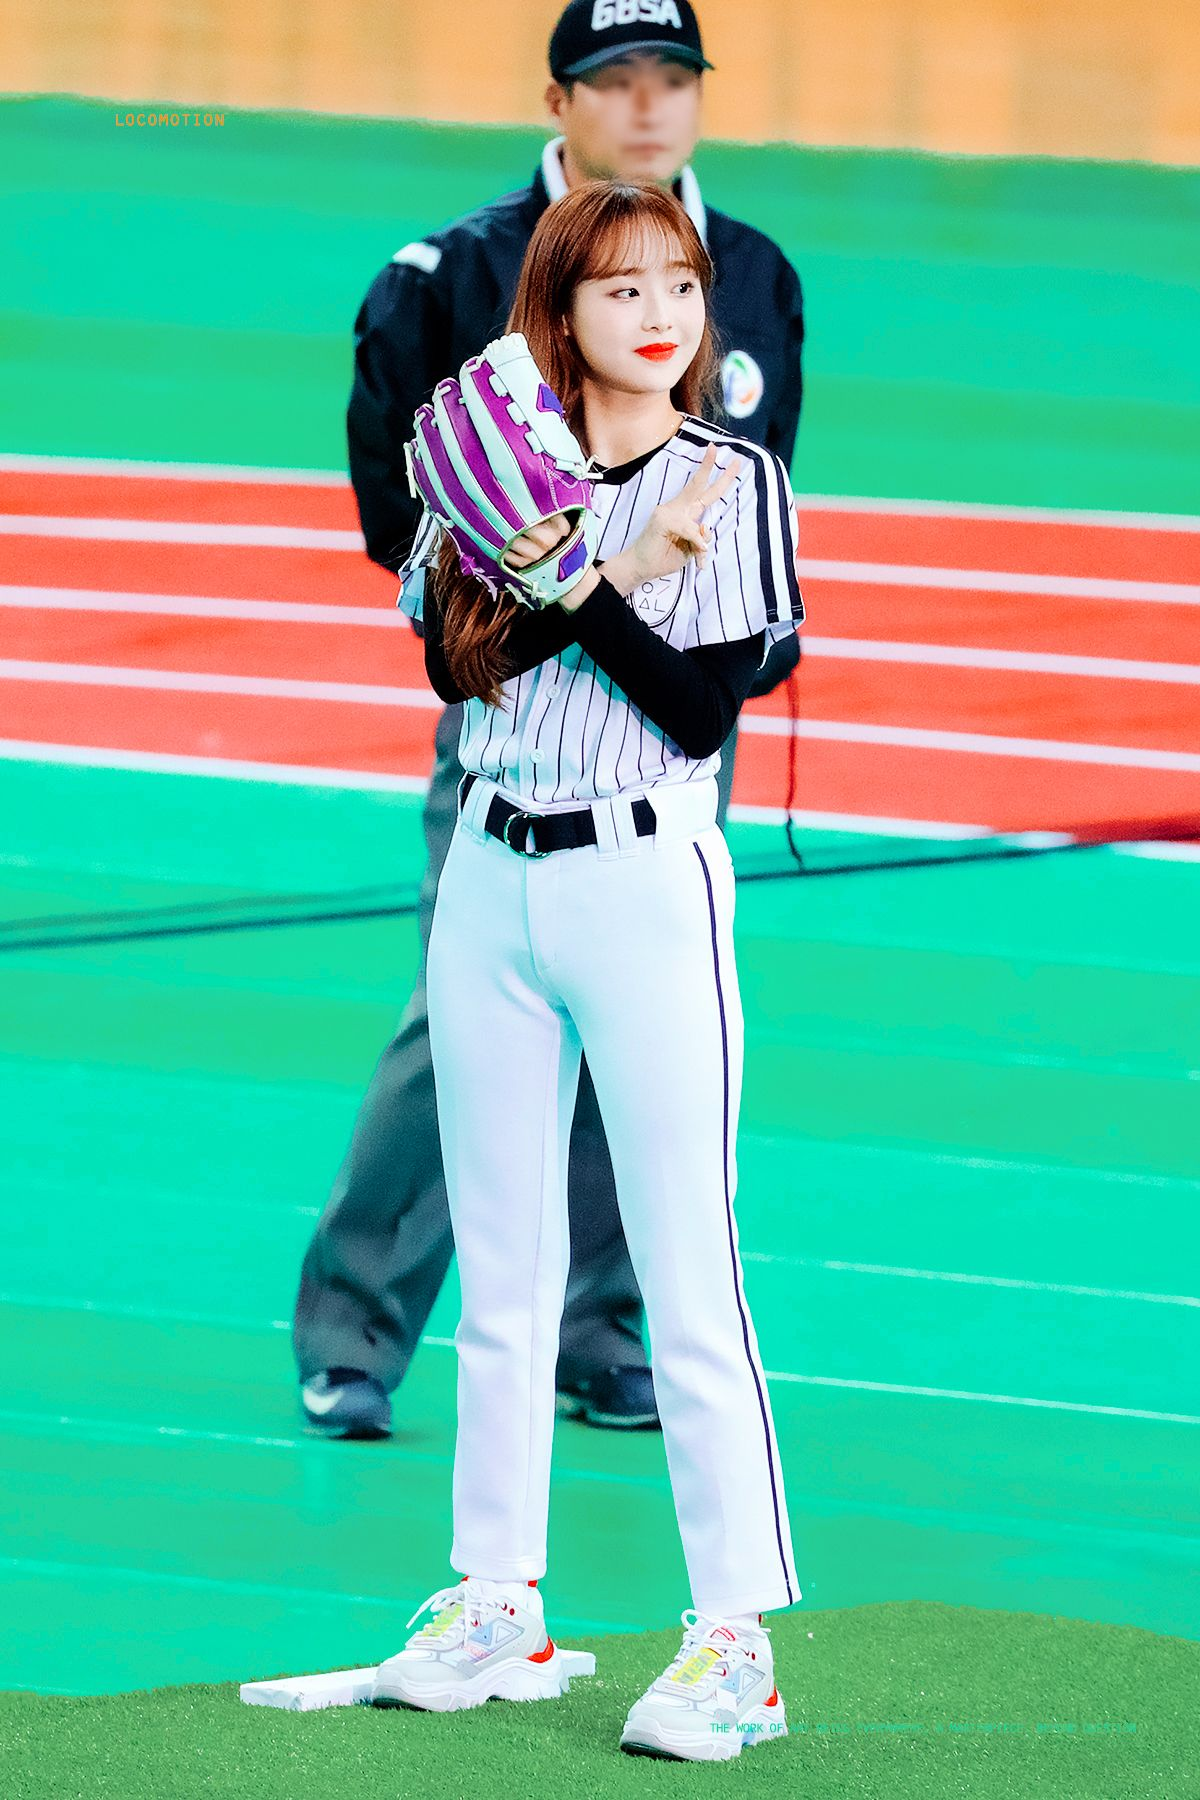 femaleidolsbaseball_8b